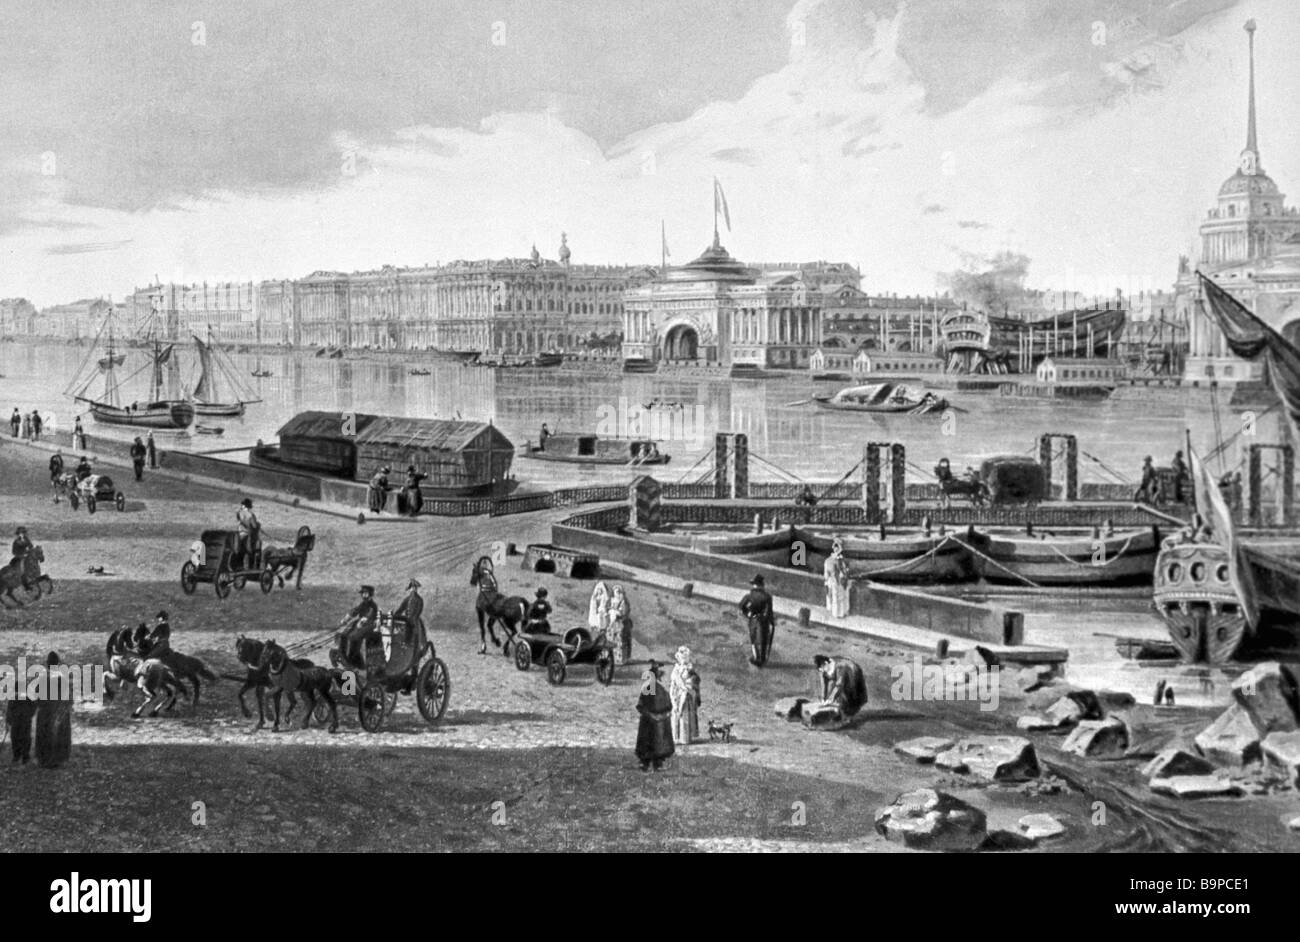 Reproduction of 1800 painting The Winter Palace and the Admiralty by Fedor Alexeyev - Stock Image